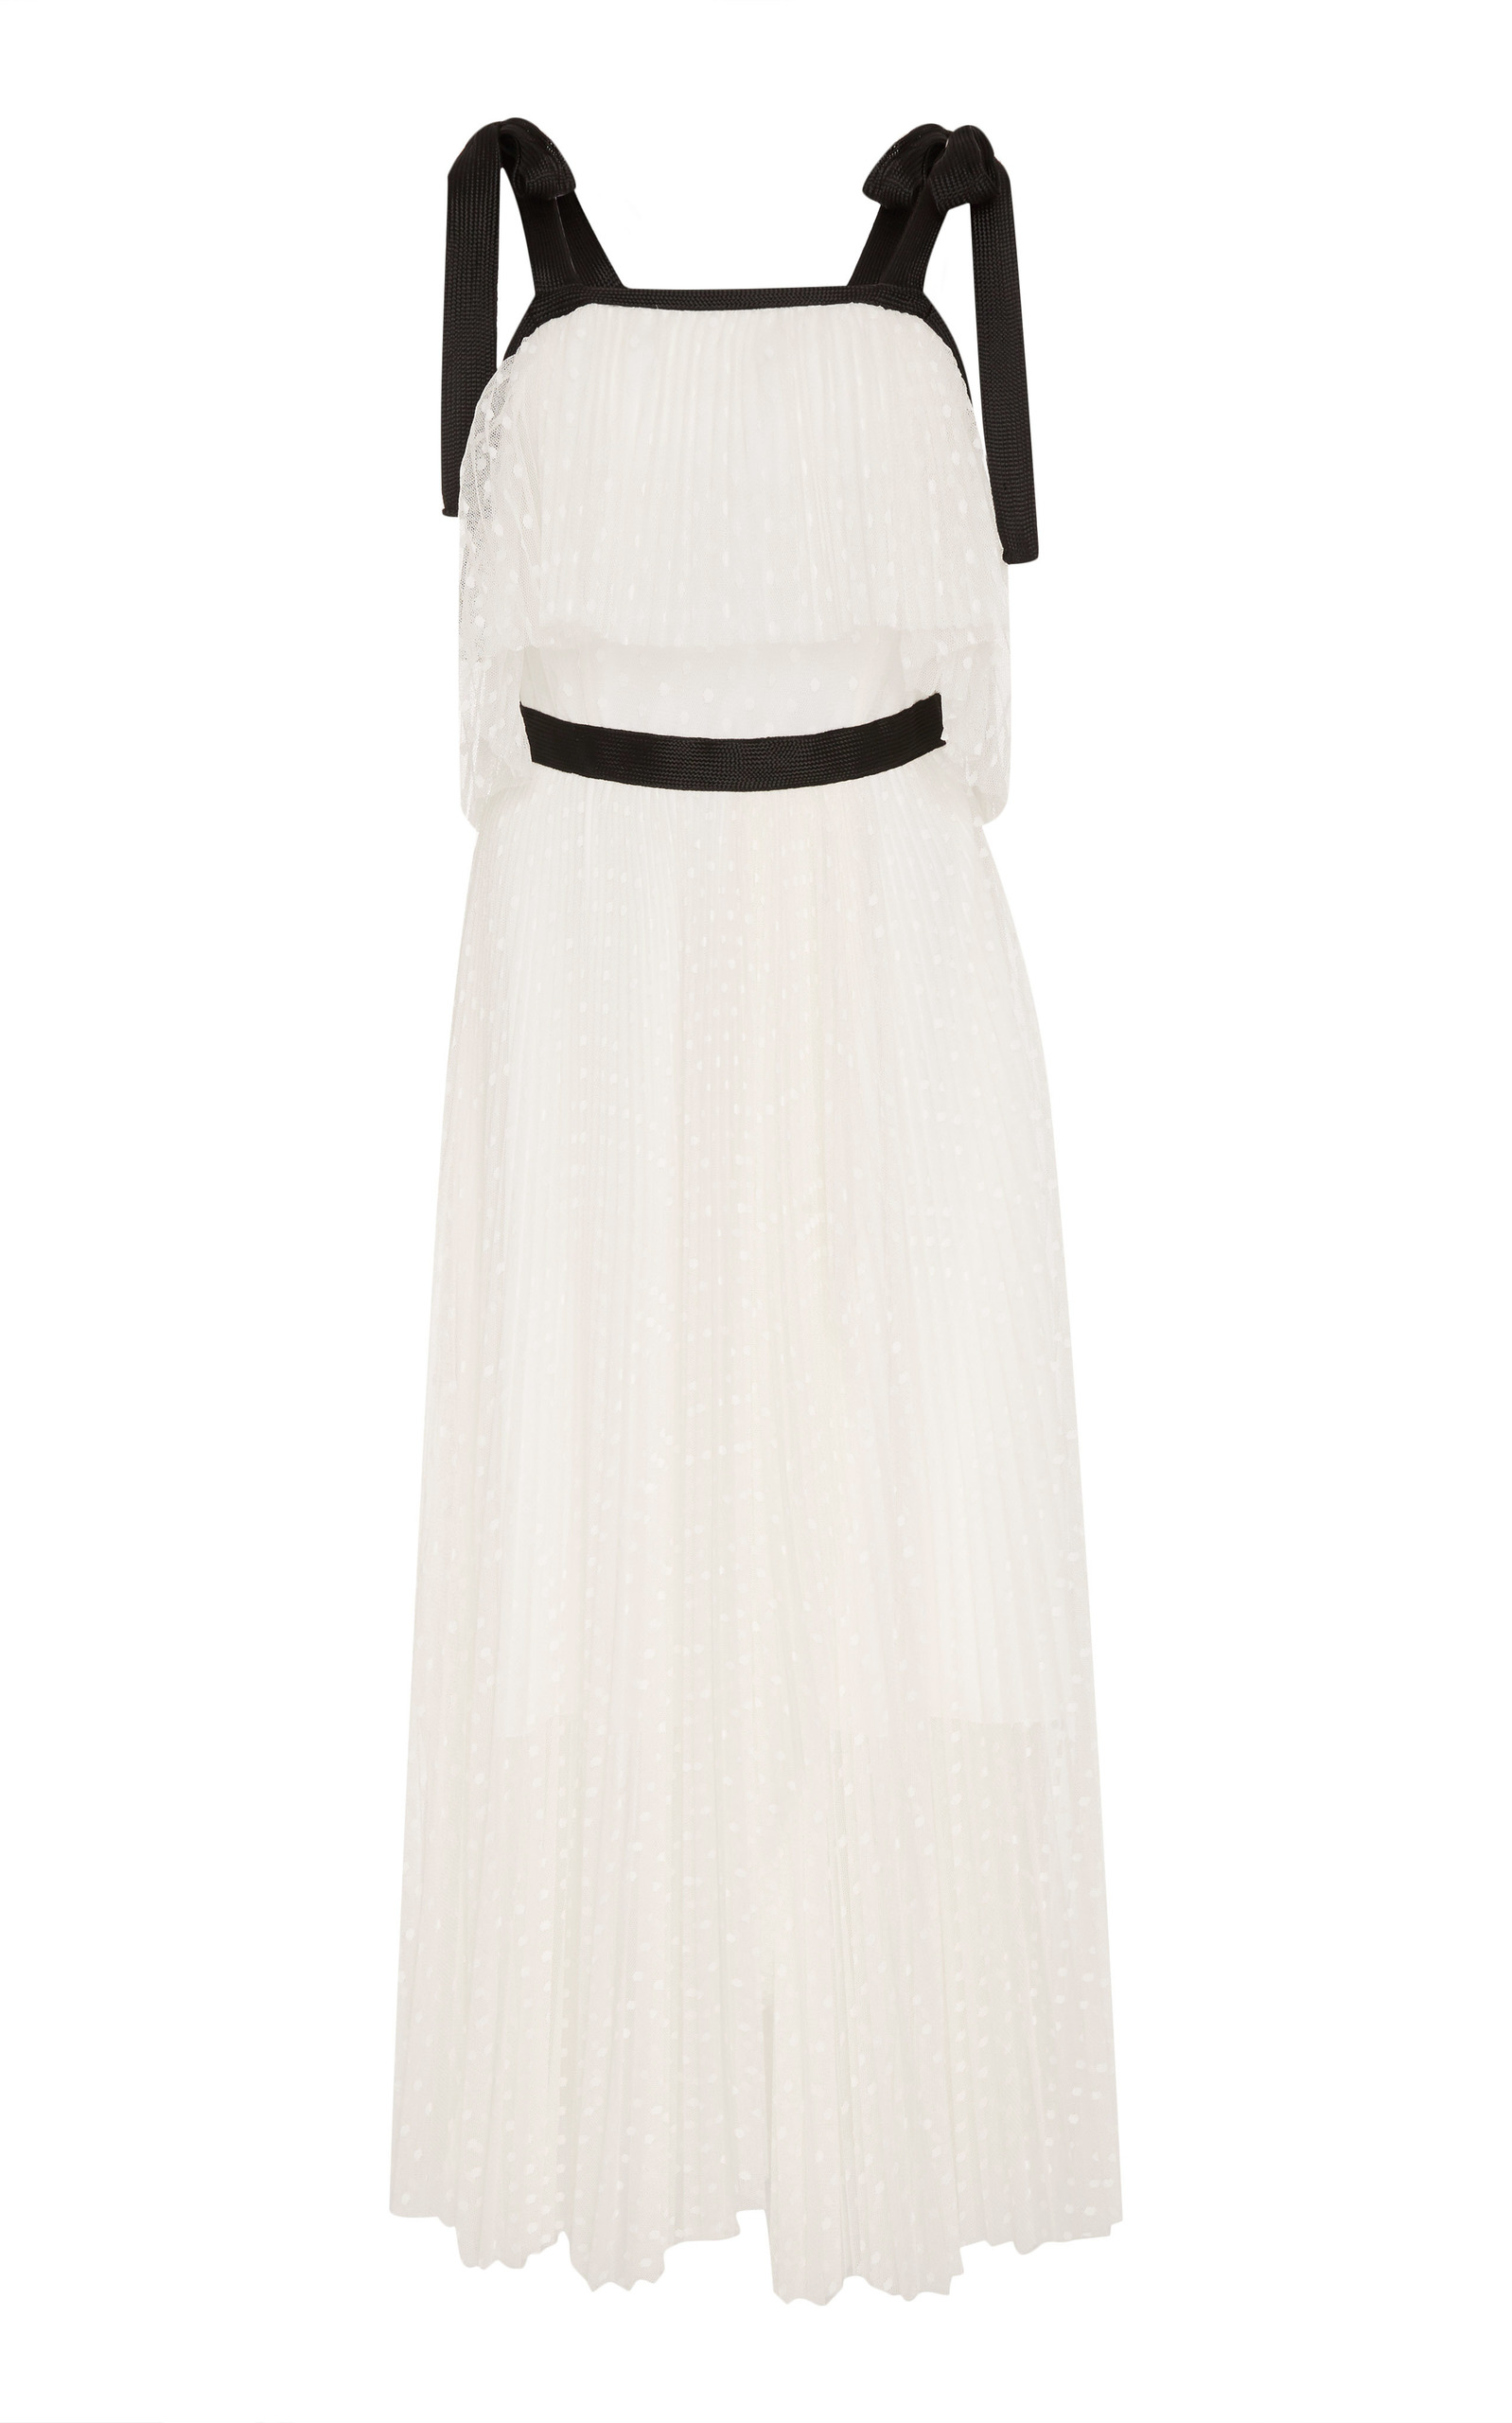 Pleated Dotted-Lace Maxi Dress - White Size 42 It